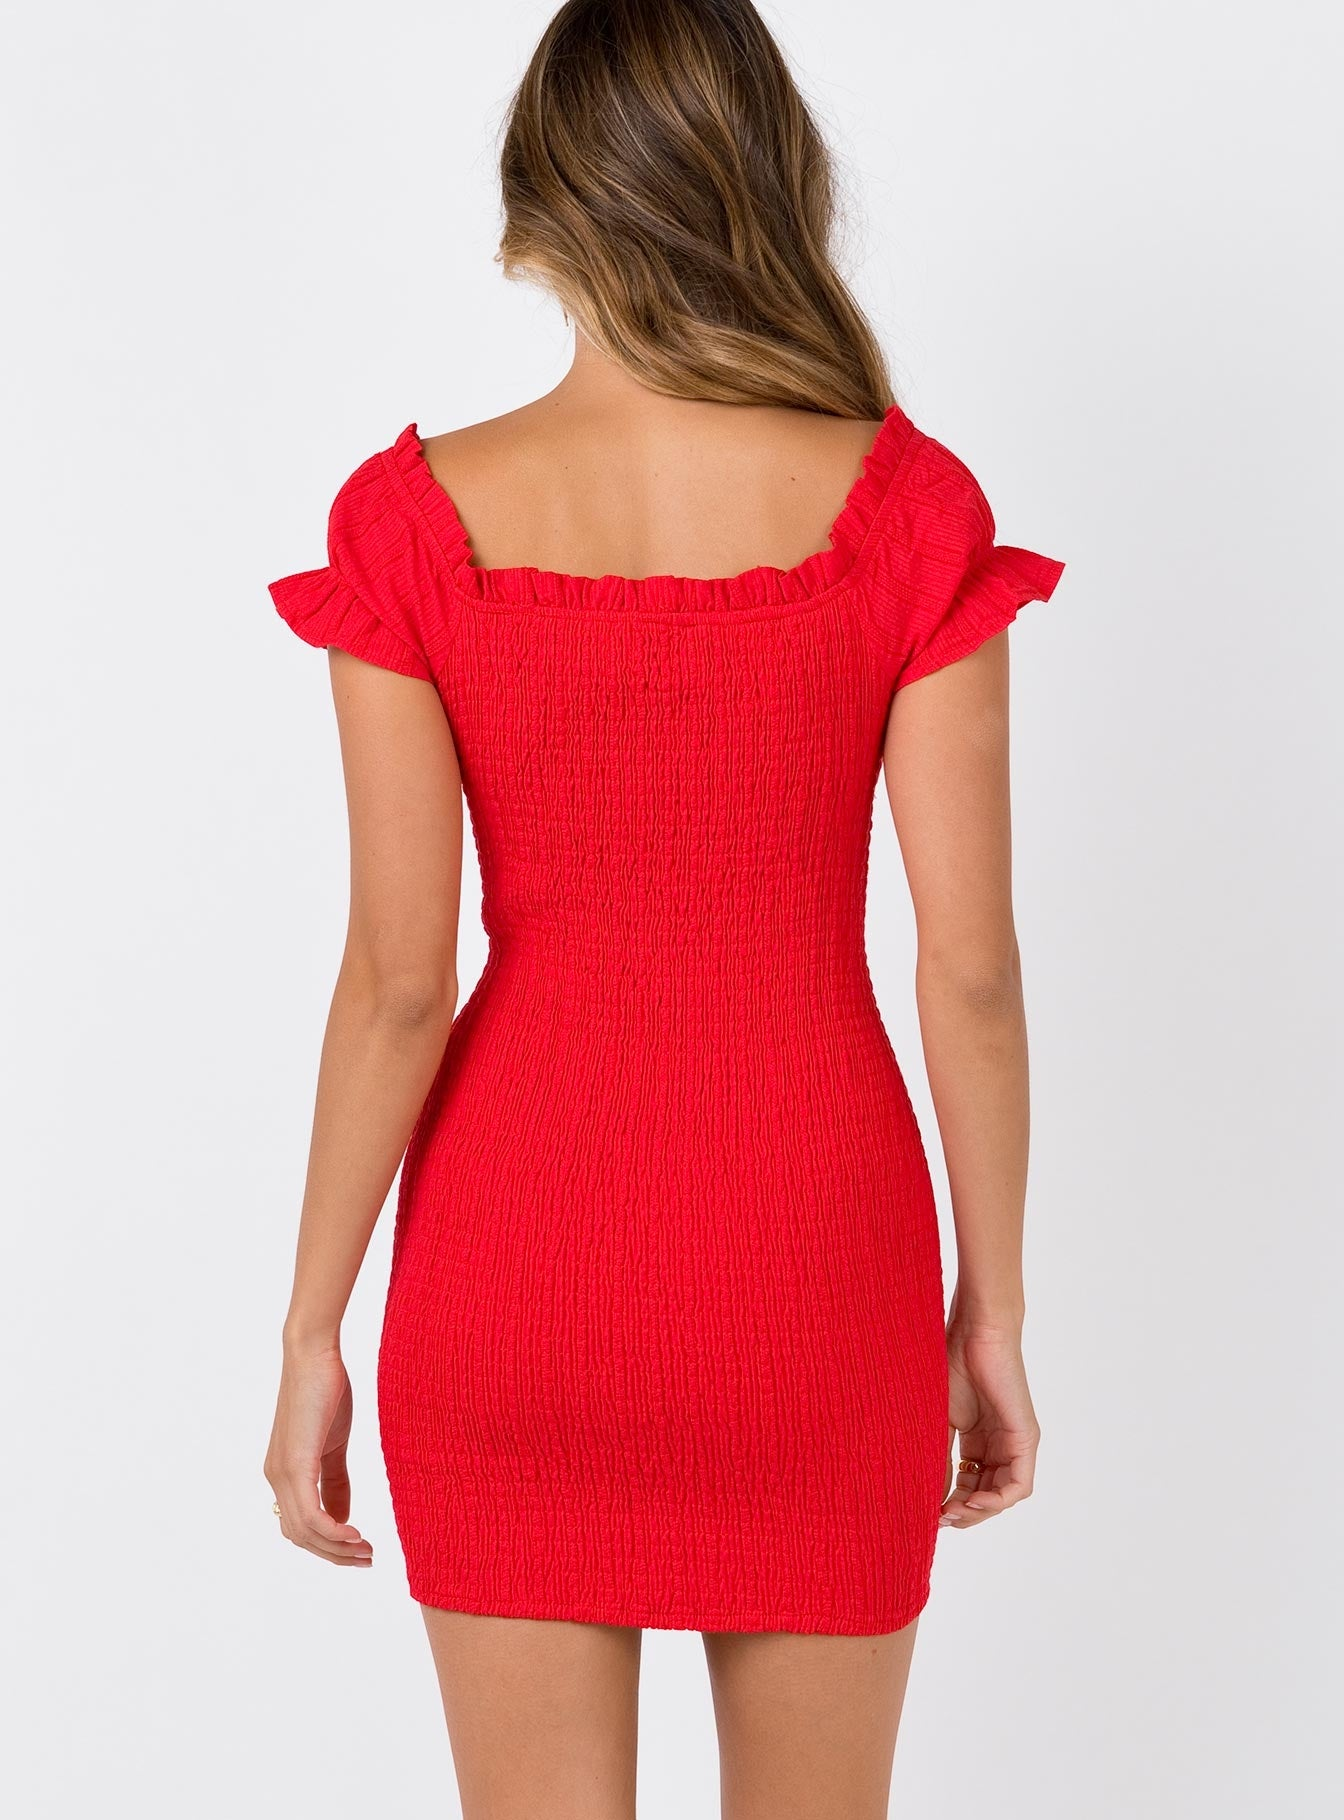 The Kipp Mini Dress Red